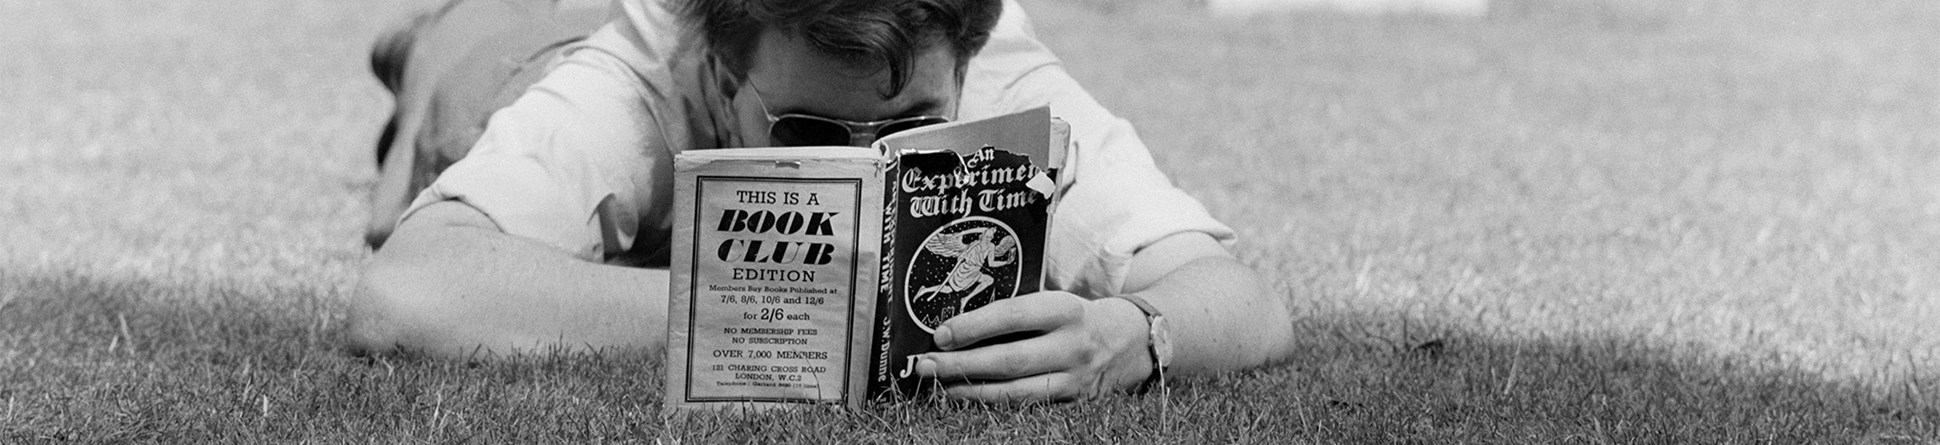 Black and white image of a man viewed head-on lying flat on the grass, engrossed in a book.